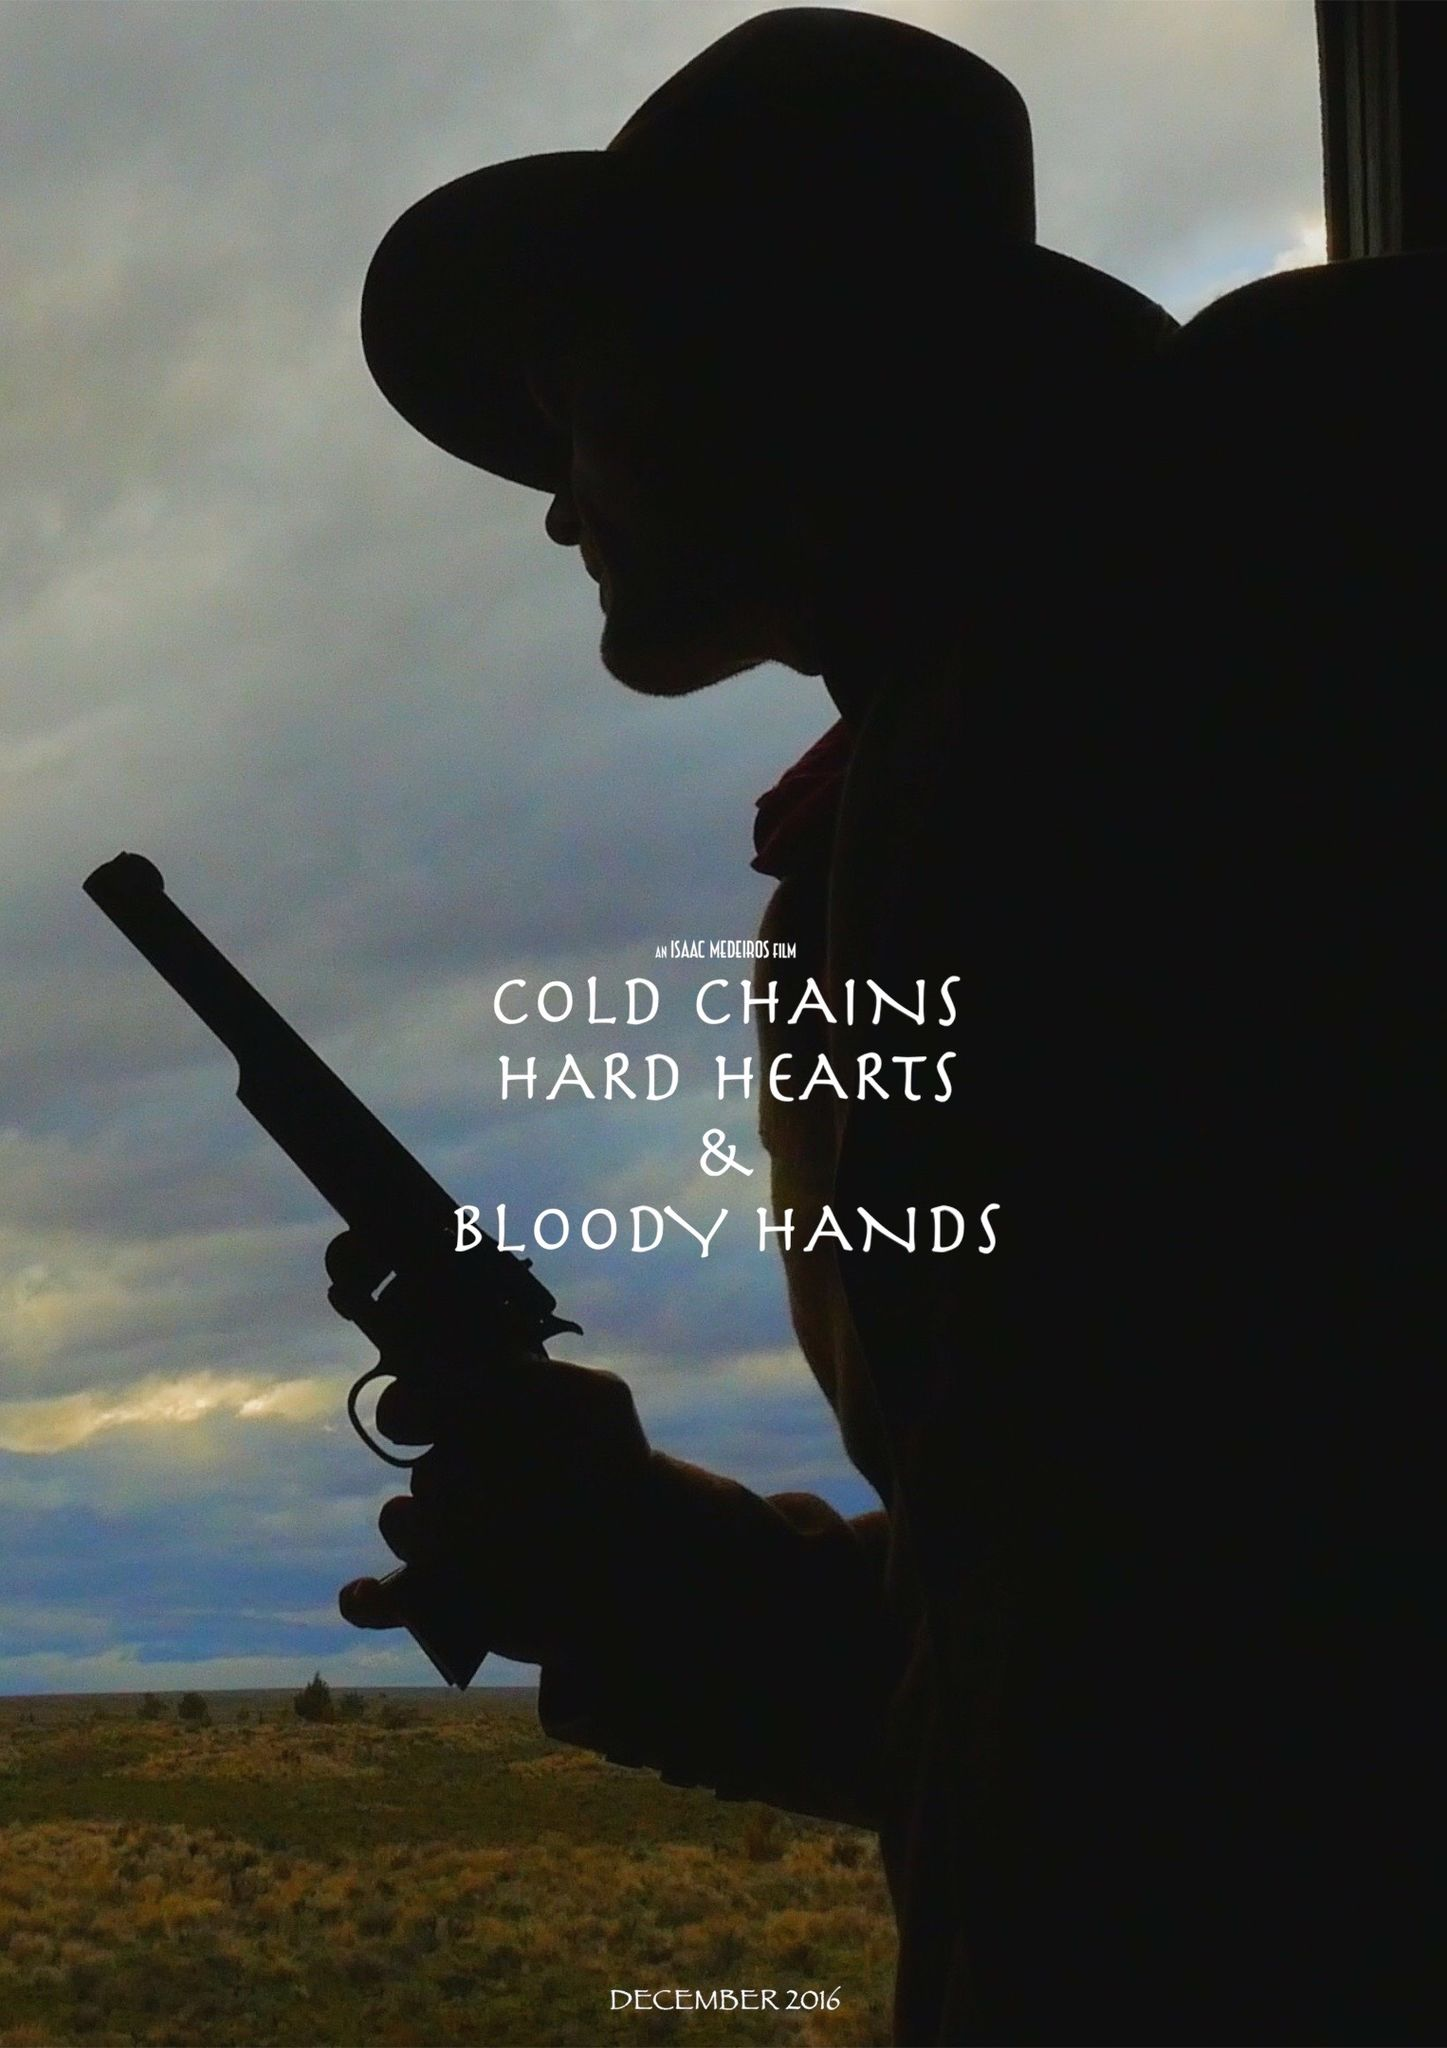 Cold Chains, Hard Hearts and Bloody Hands